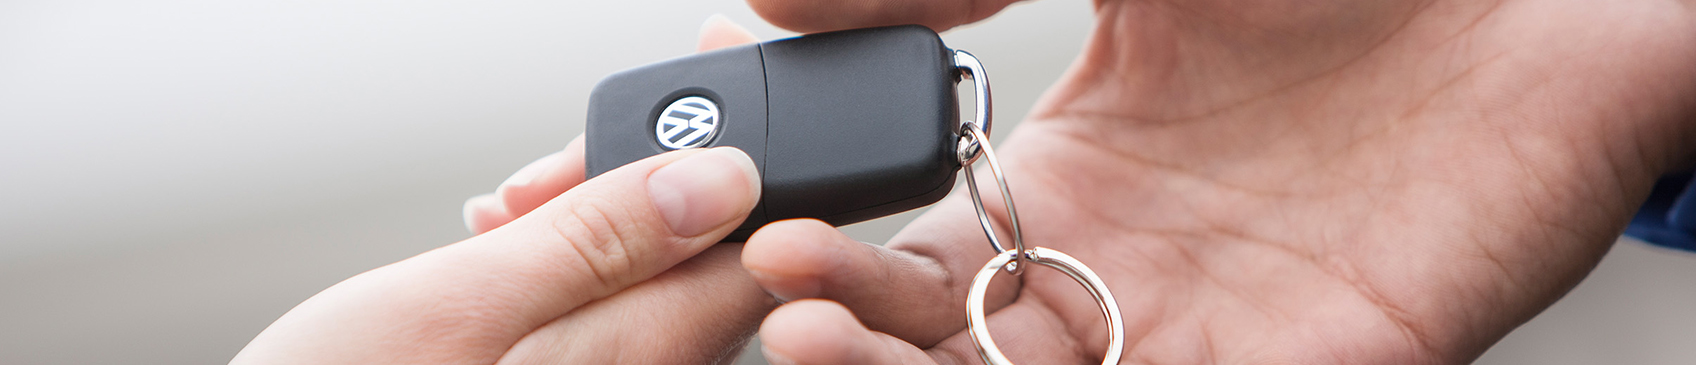 Handing over the keys to your new Volkswagen in Brisbane, Queensland.